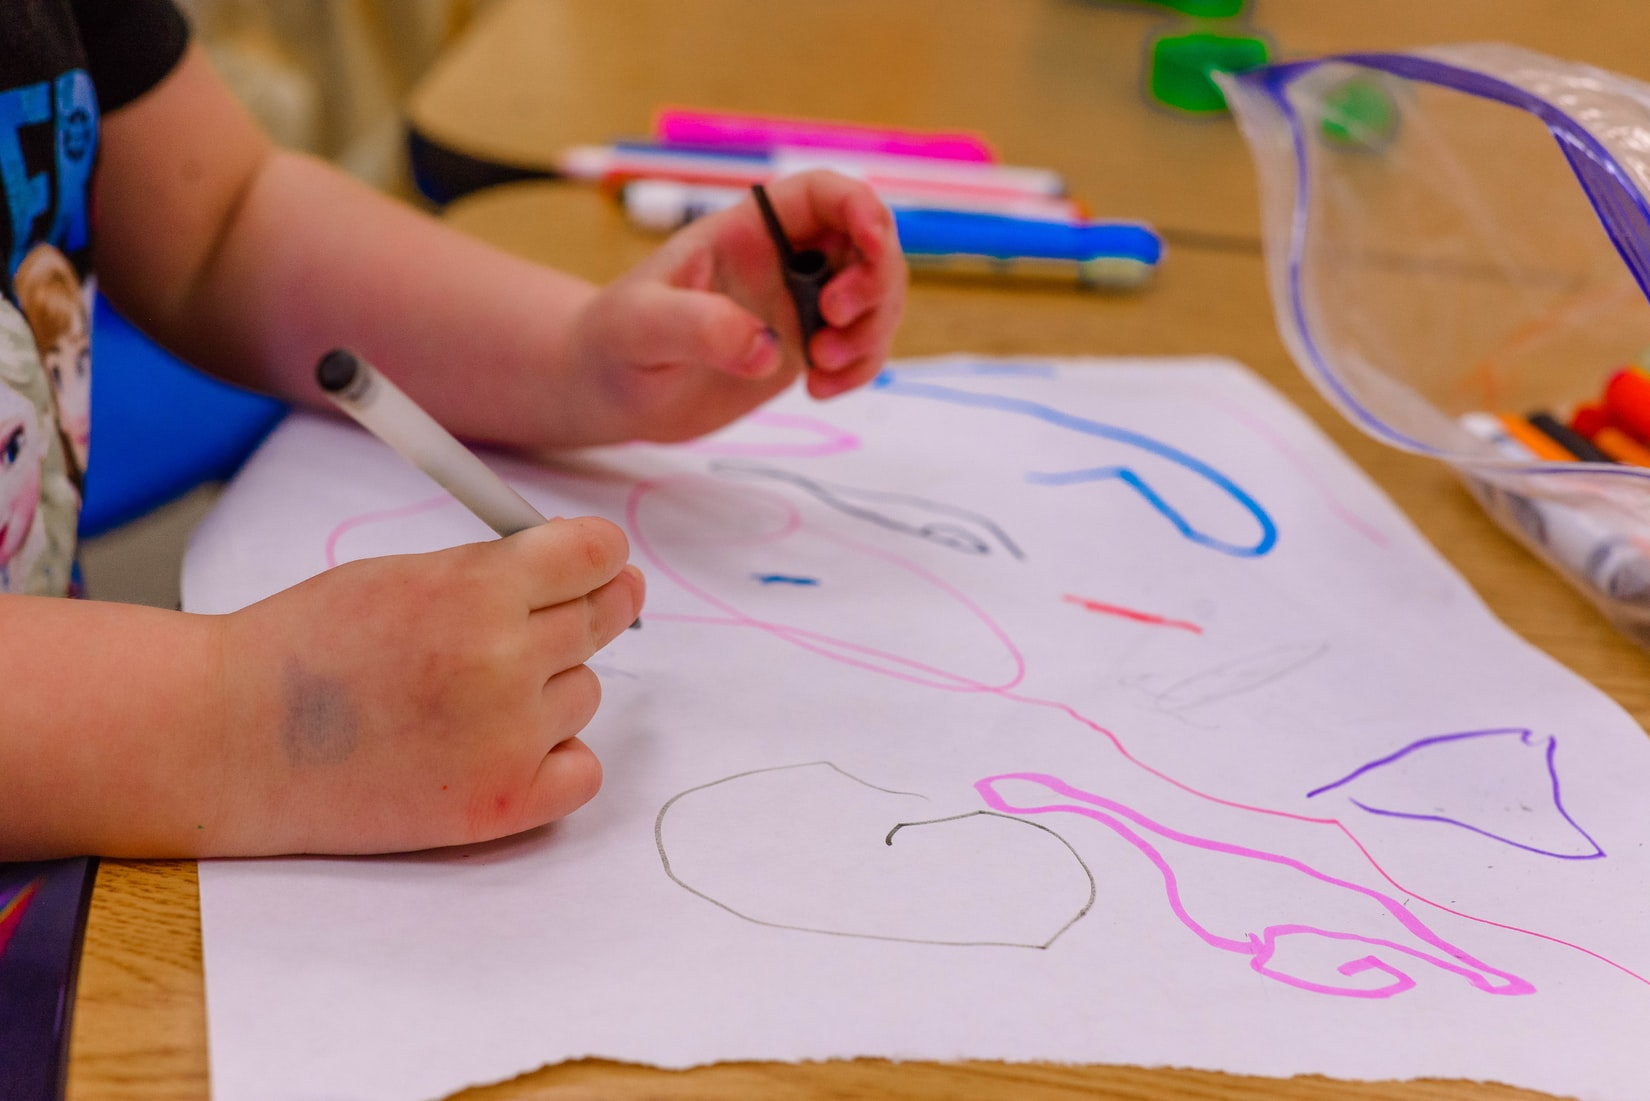 Discovery Day: Helping Children Explore Spiritual Practices